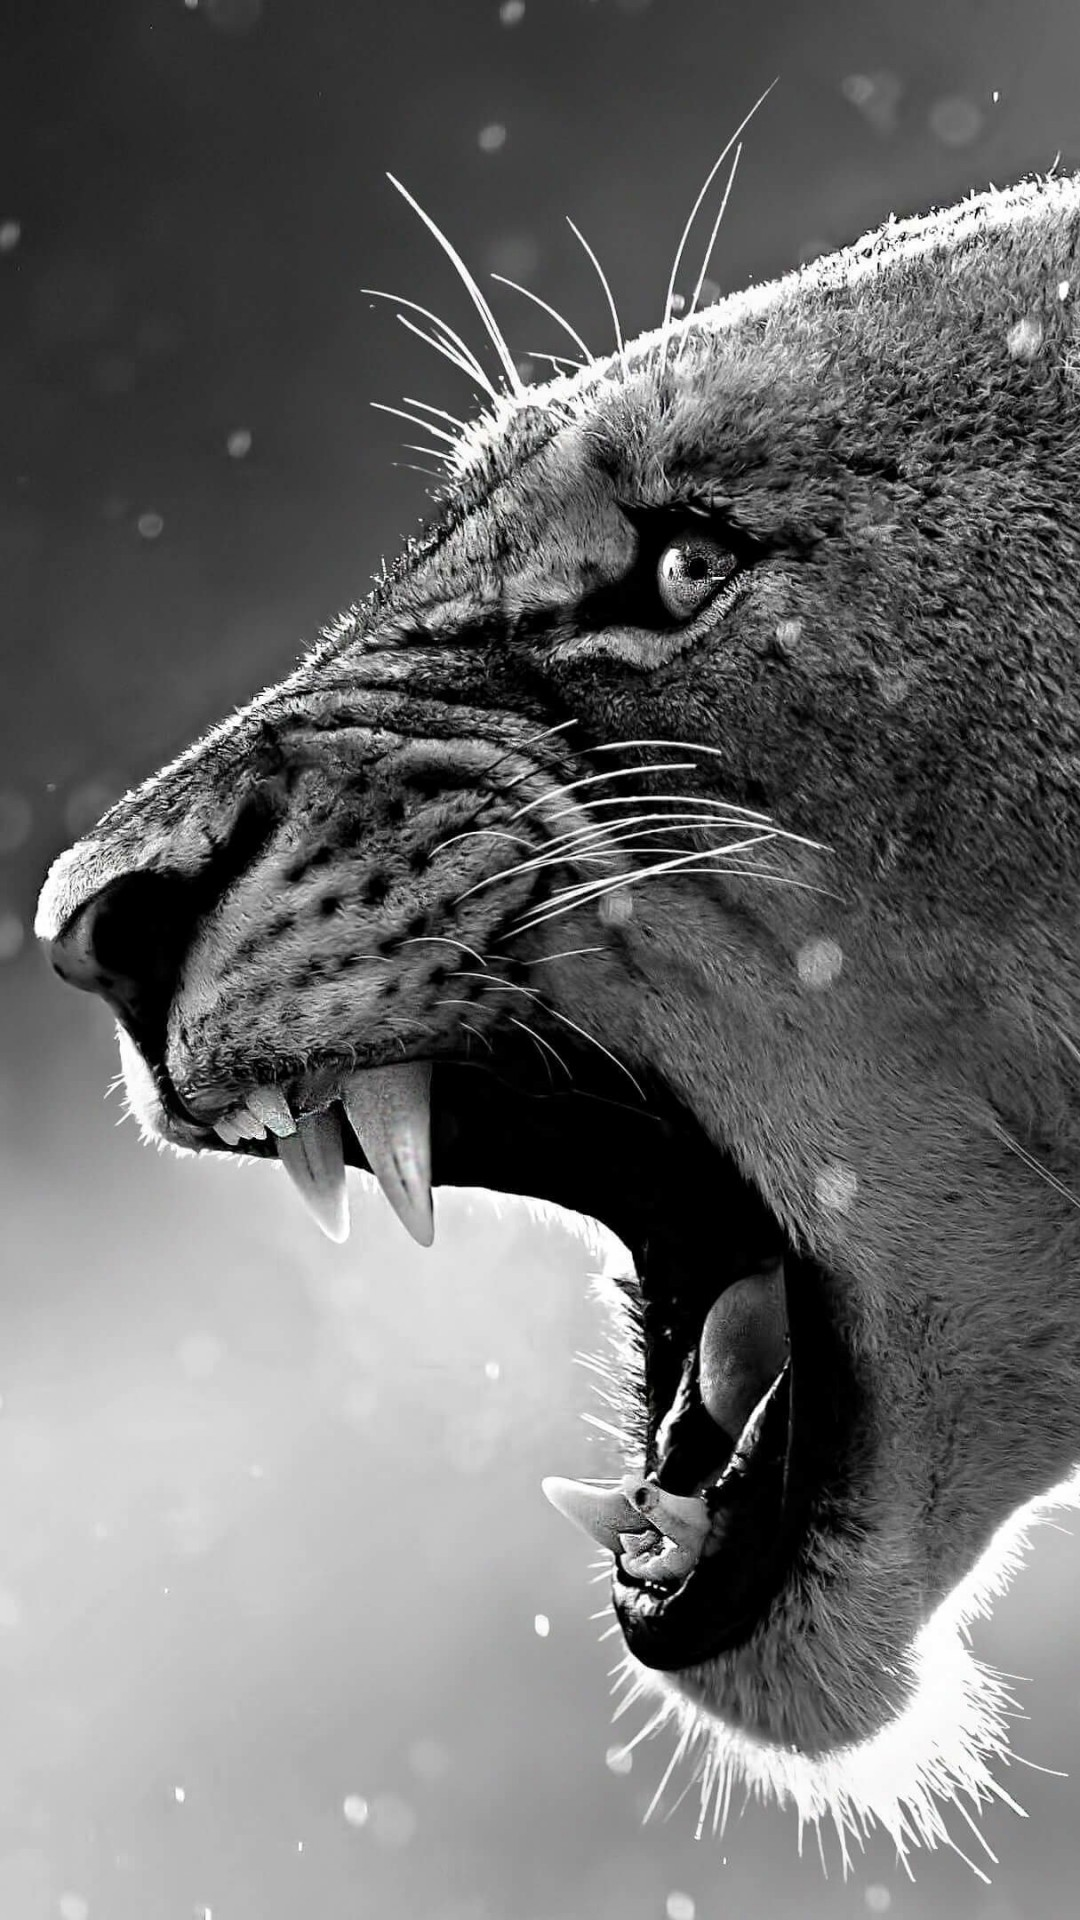 Lioness in Black & White Wallpaper for Google Nexus 5X